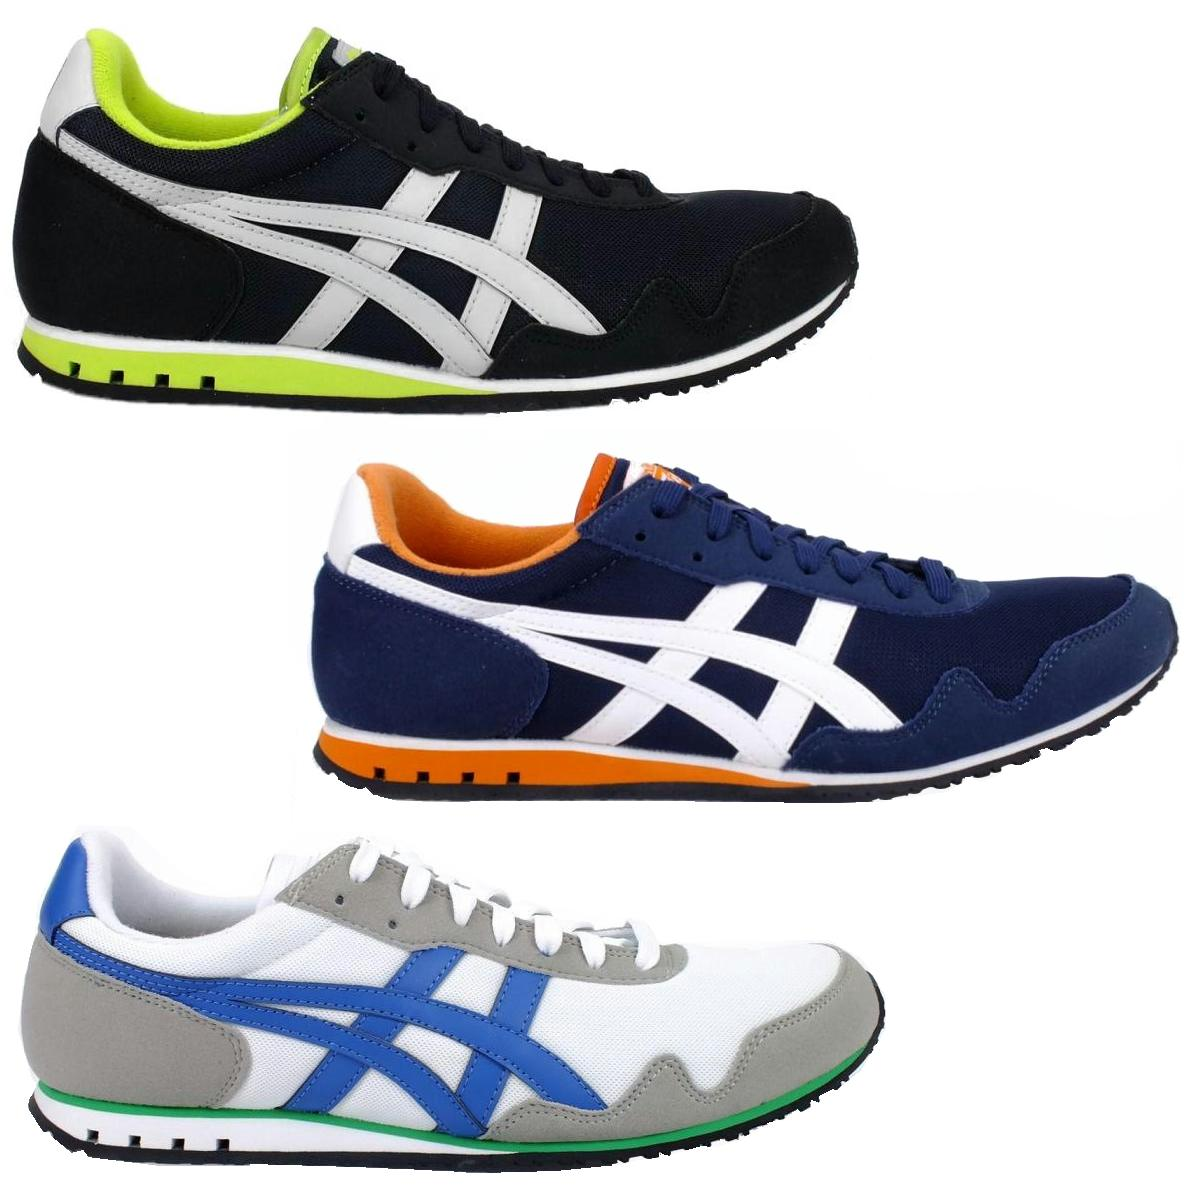 asics sumiyaka sneaker schuhe herren ebay. Black Bedroom Furniture Sets. Home Design Ideas